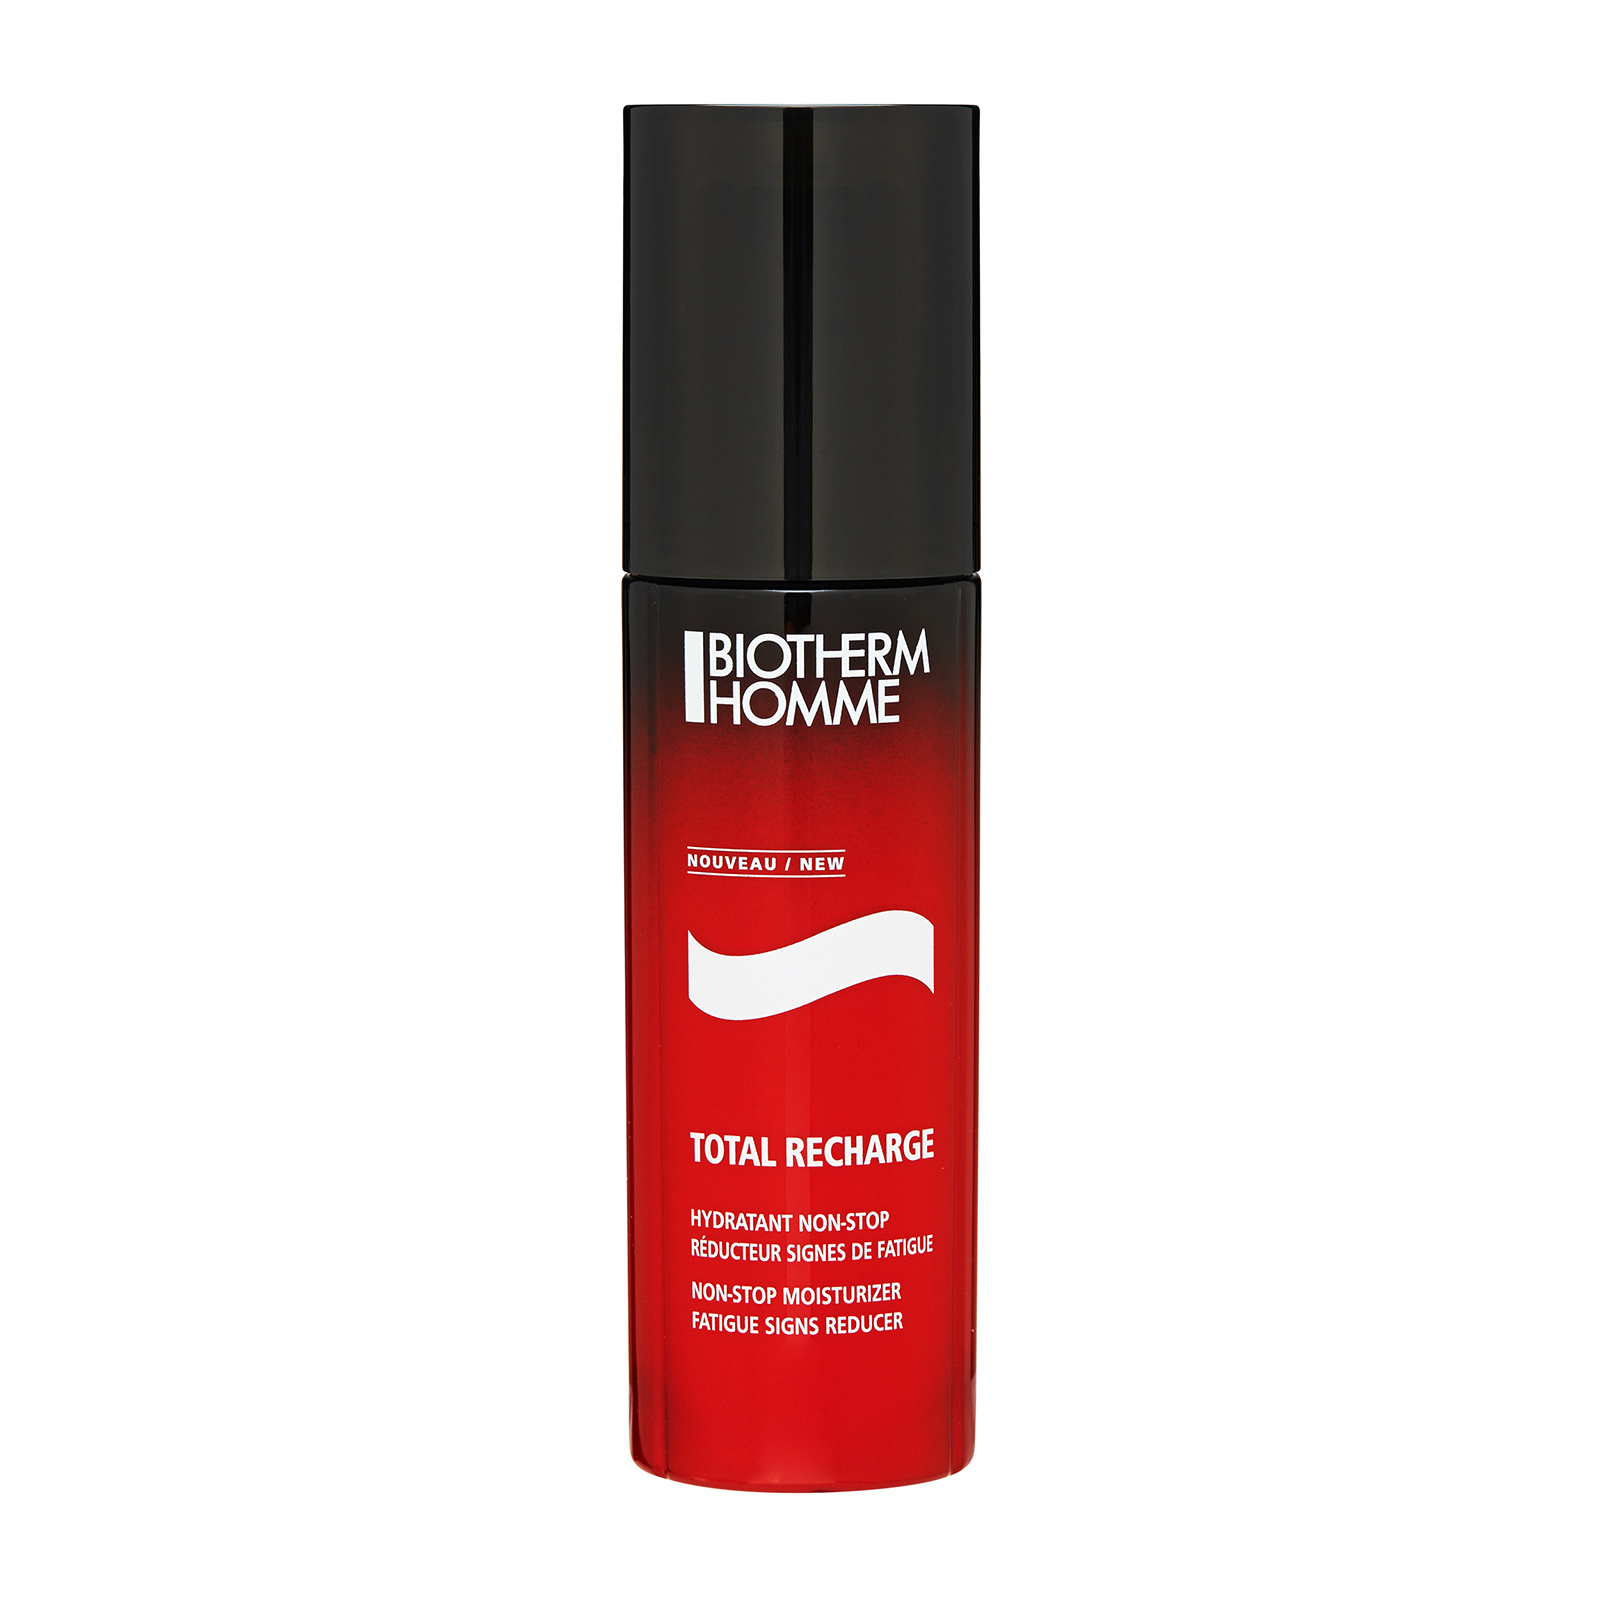 Biotherm Homme  Total Recharge Non-Stop Moisturizer Fatigue Signs Reducer 1.69oz, 50ml